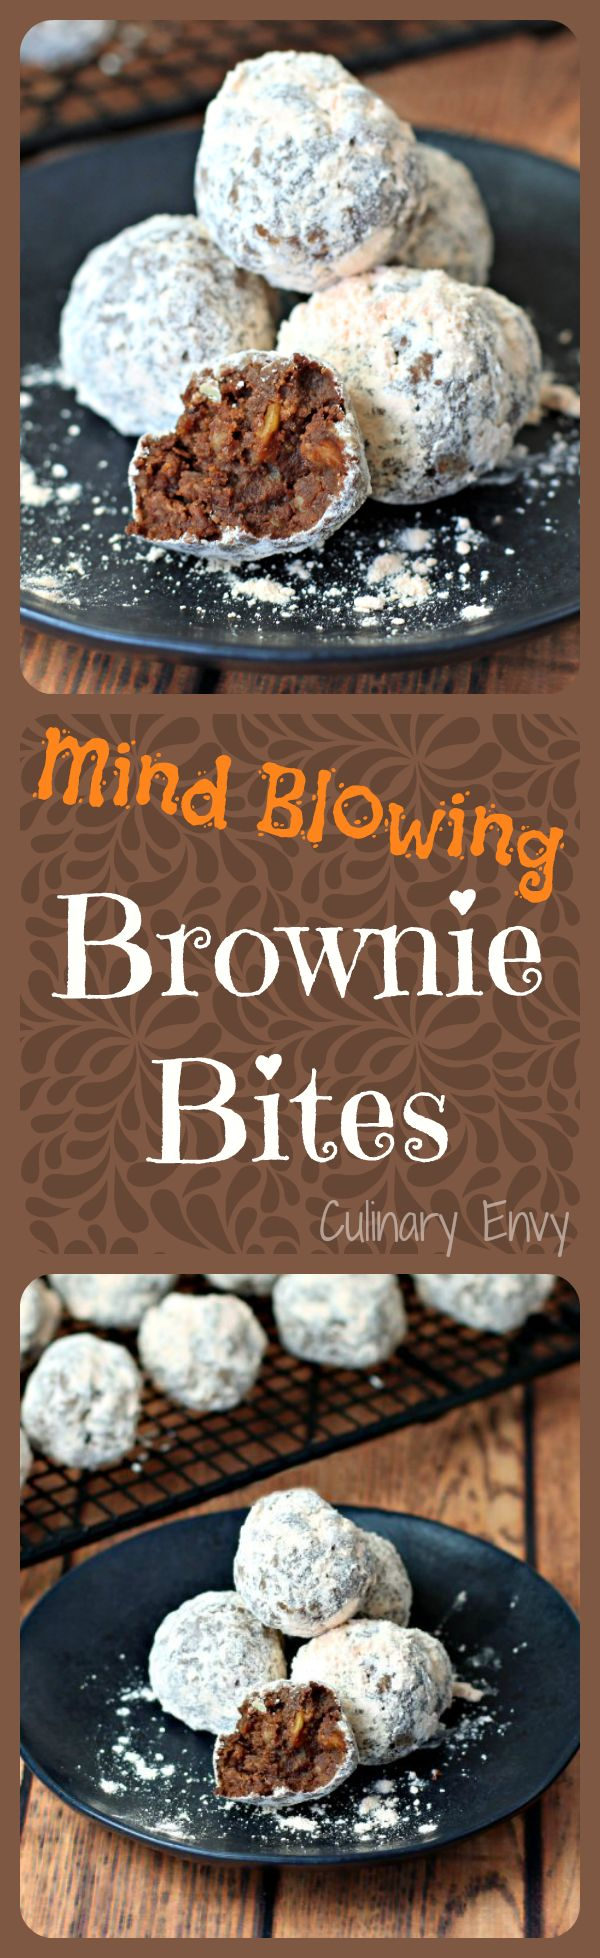 You won't believe what 5 ingredients make up these Mind Blowing Brownie Bites. Your family will go CRAZY for this fudgy, nutty dessert!